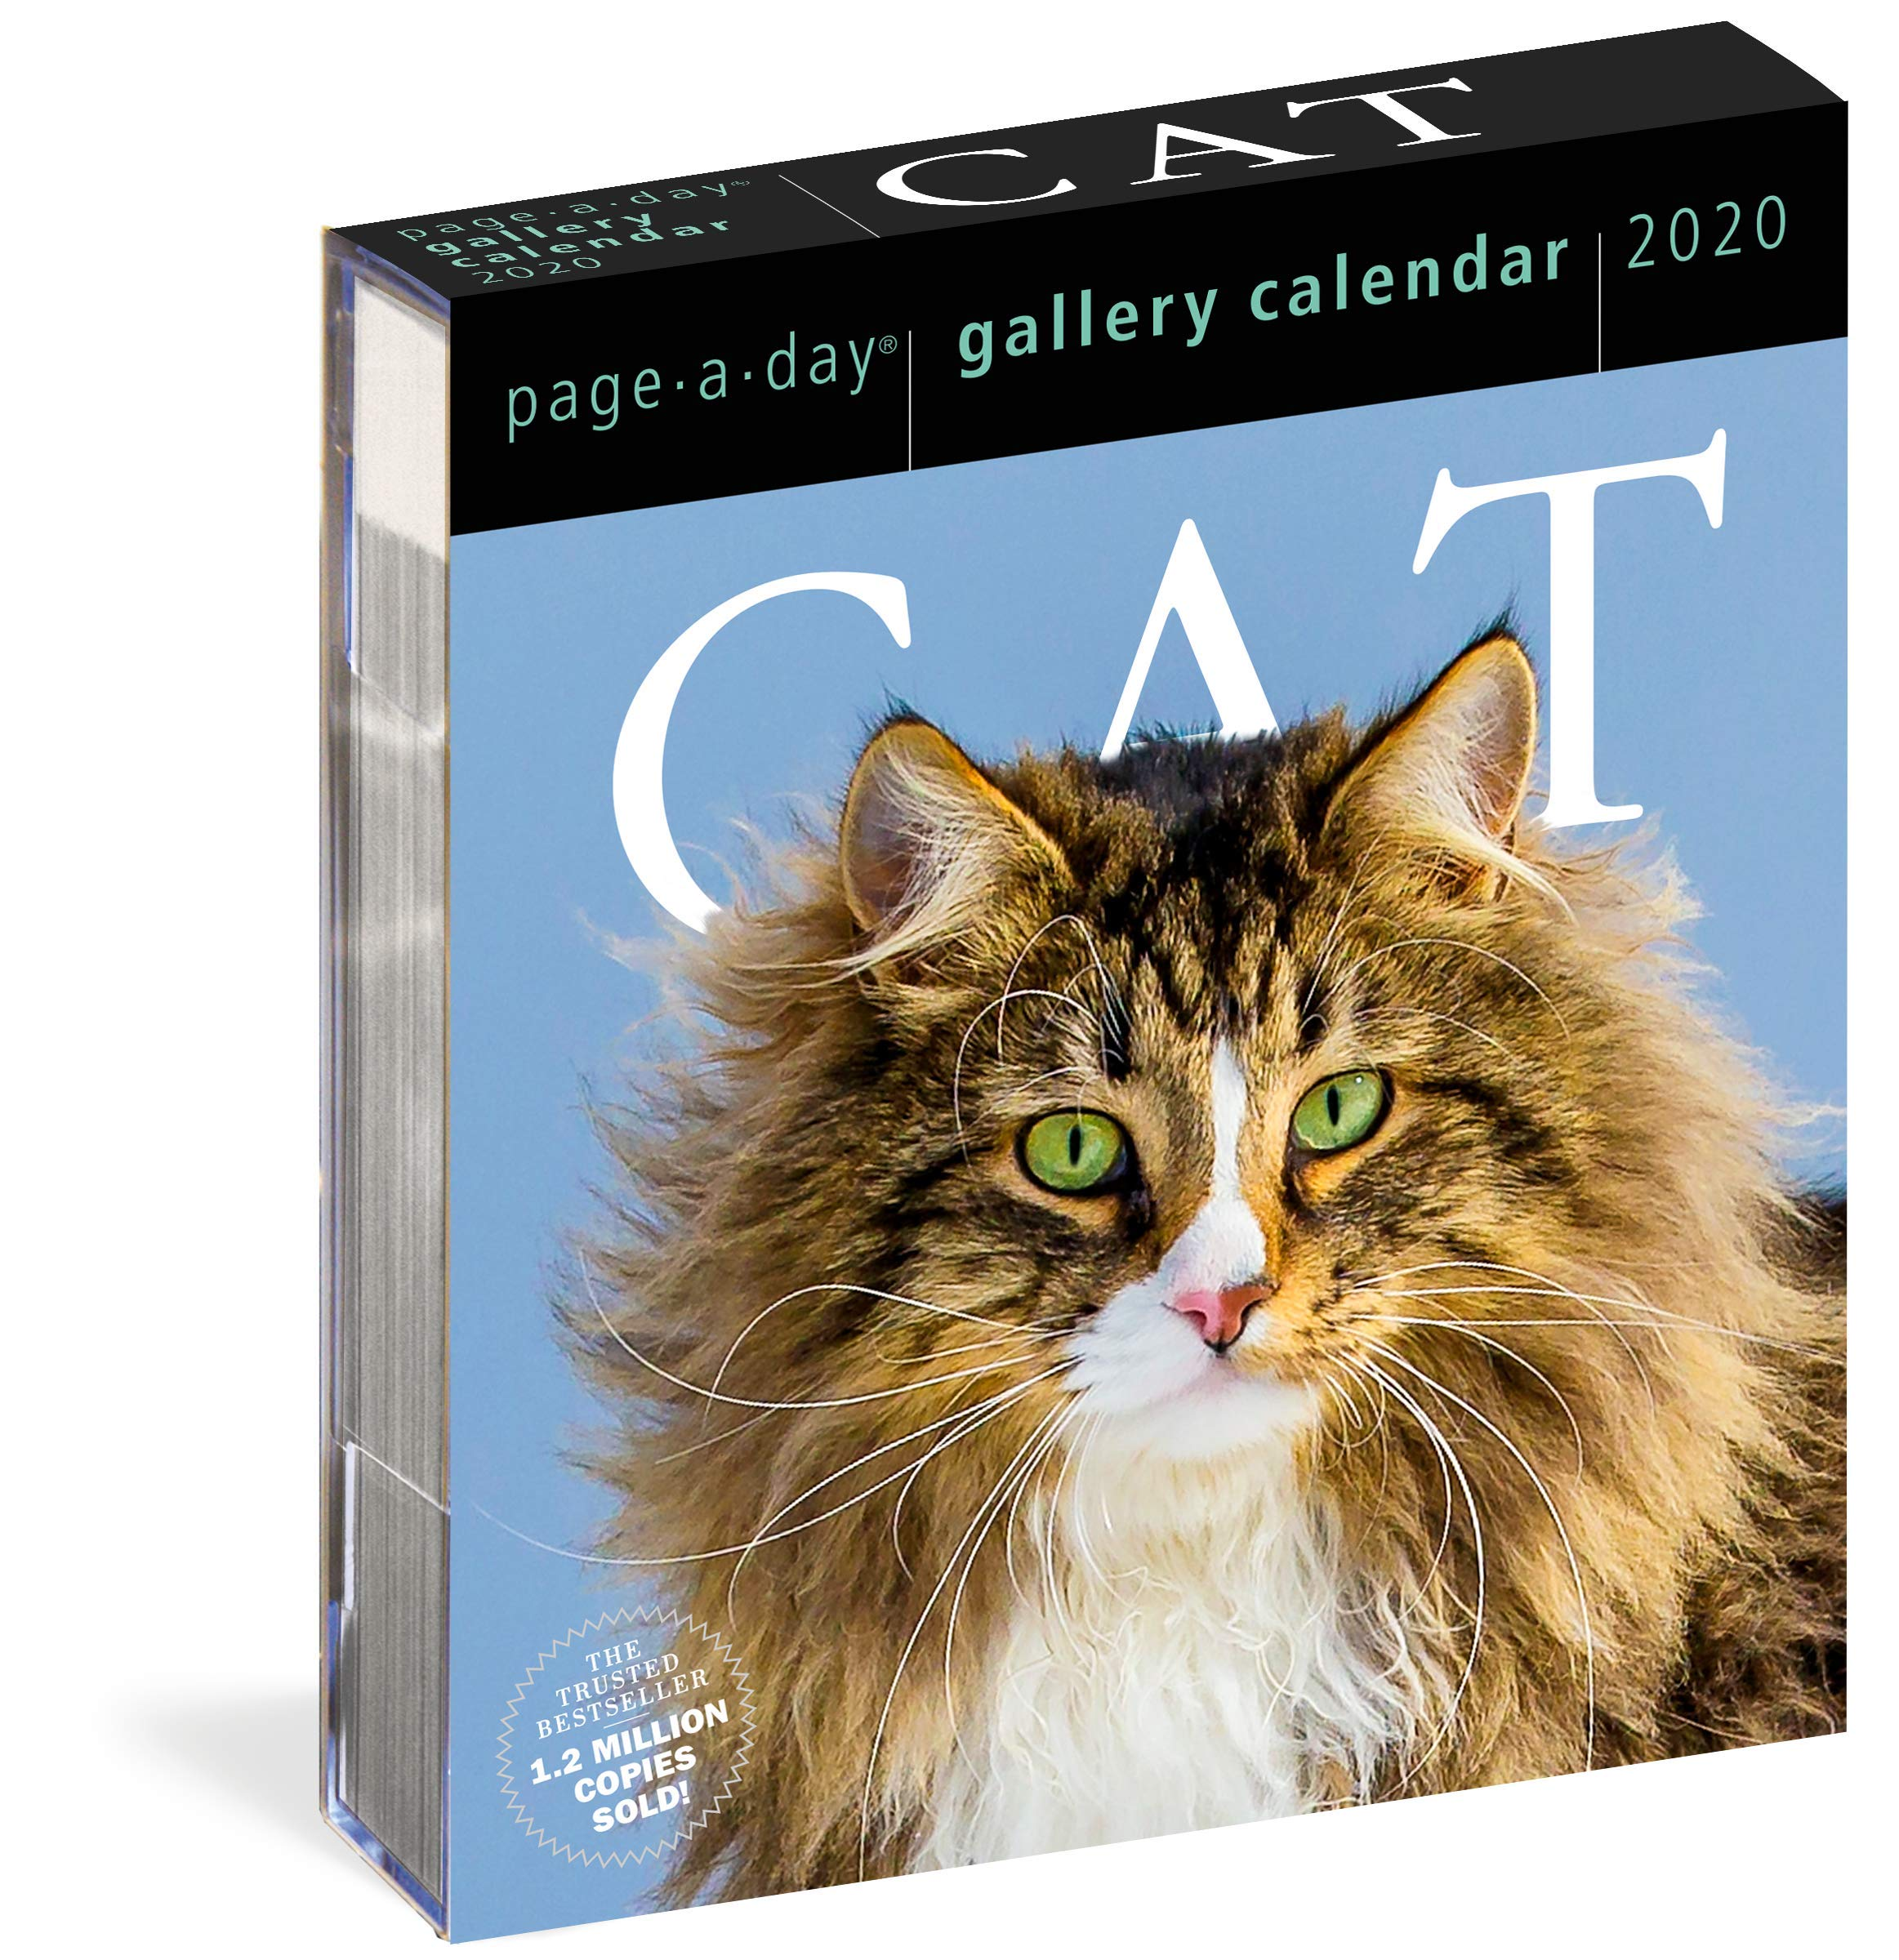 Best Cat Toys 2020.2020 Cat Page A Day Gallery Calendar Amazon Co Uk Workman